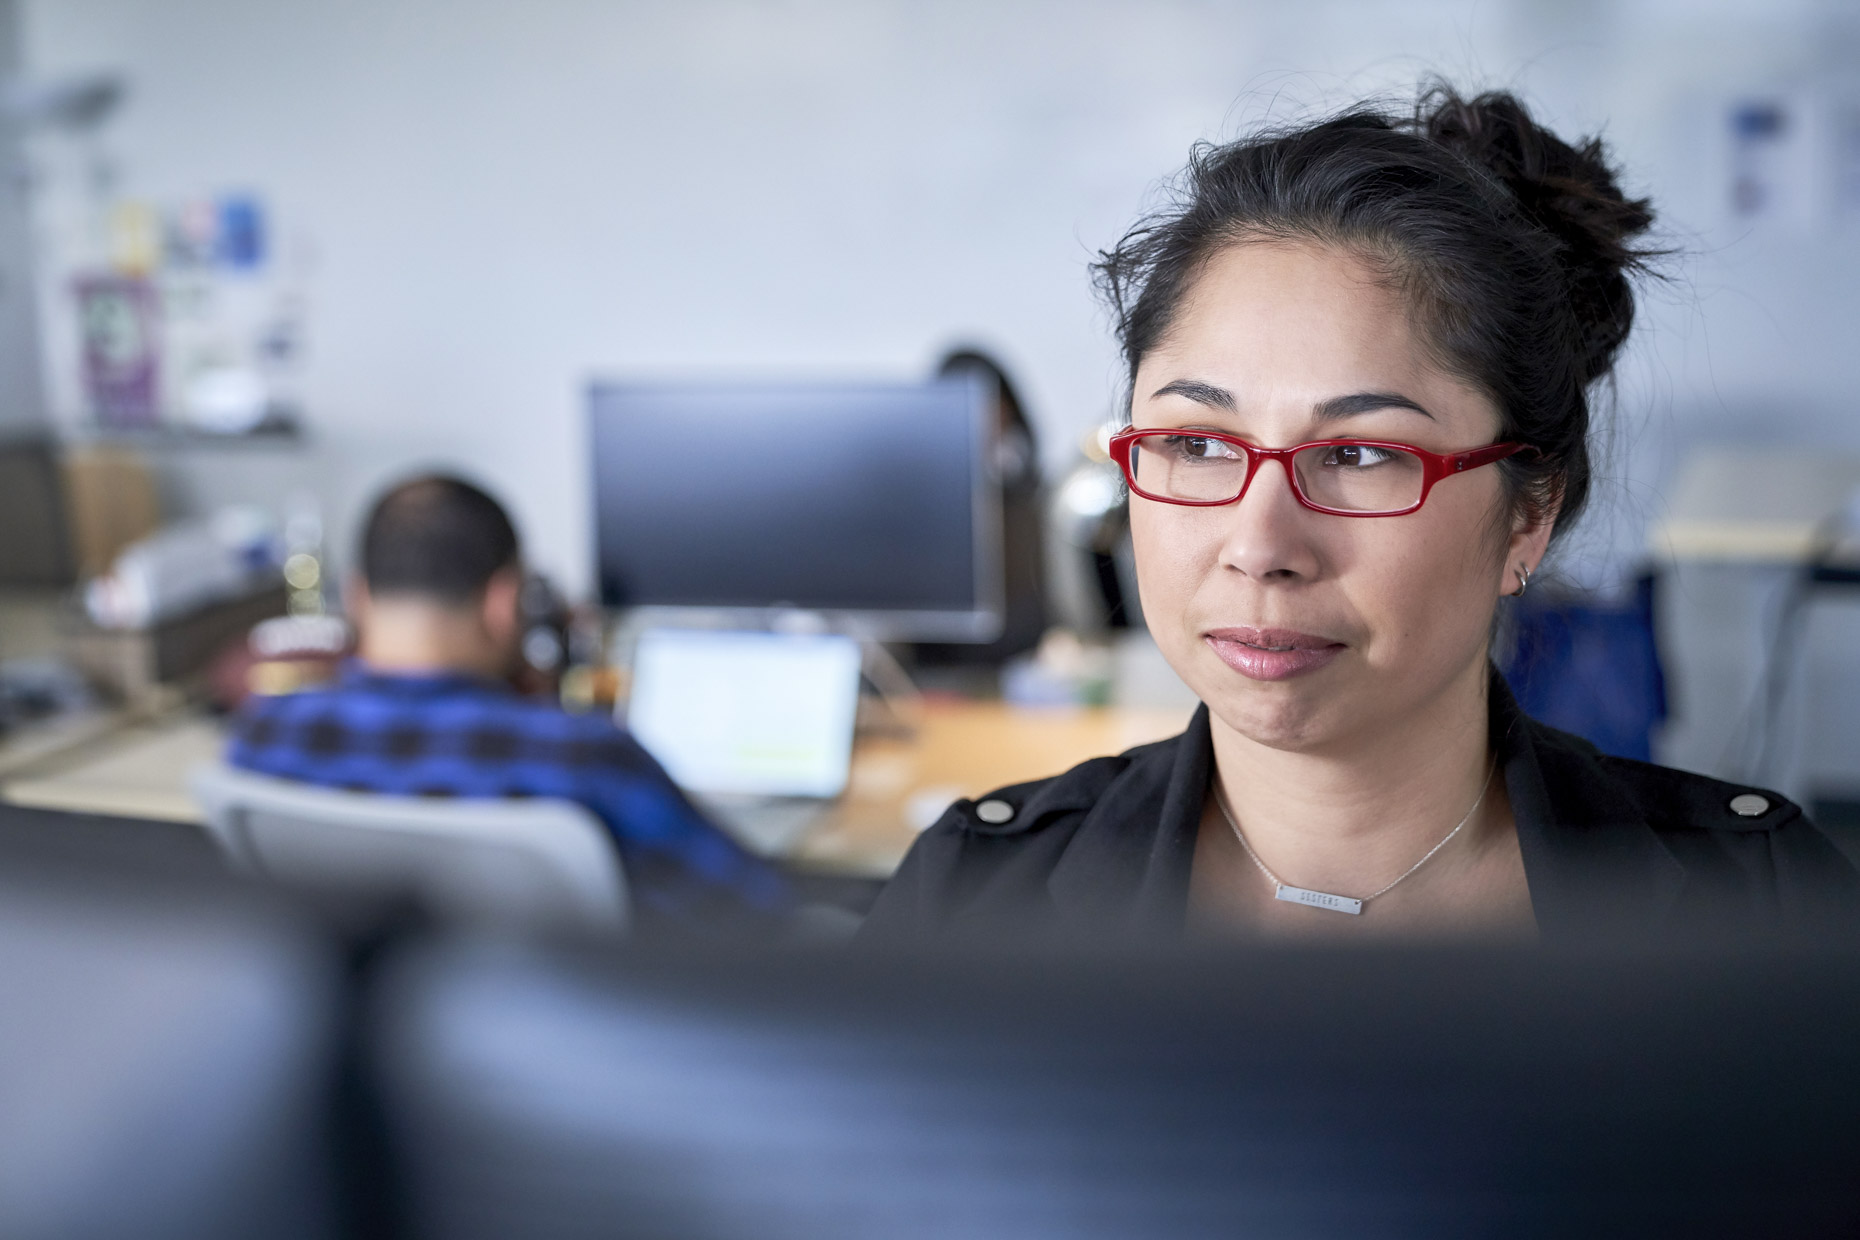 Woman in red glasses in busy office looking off to side